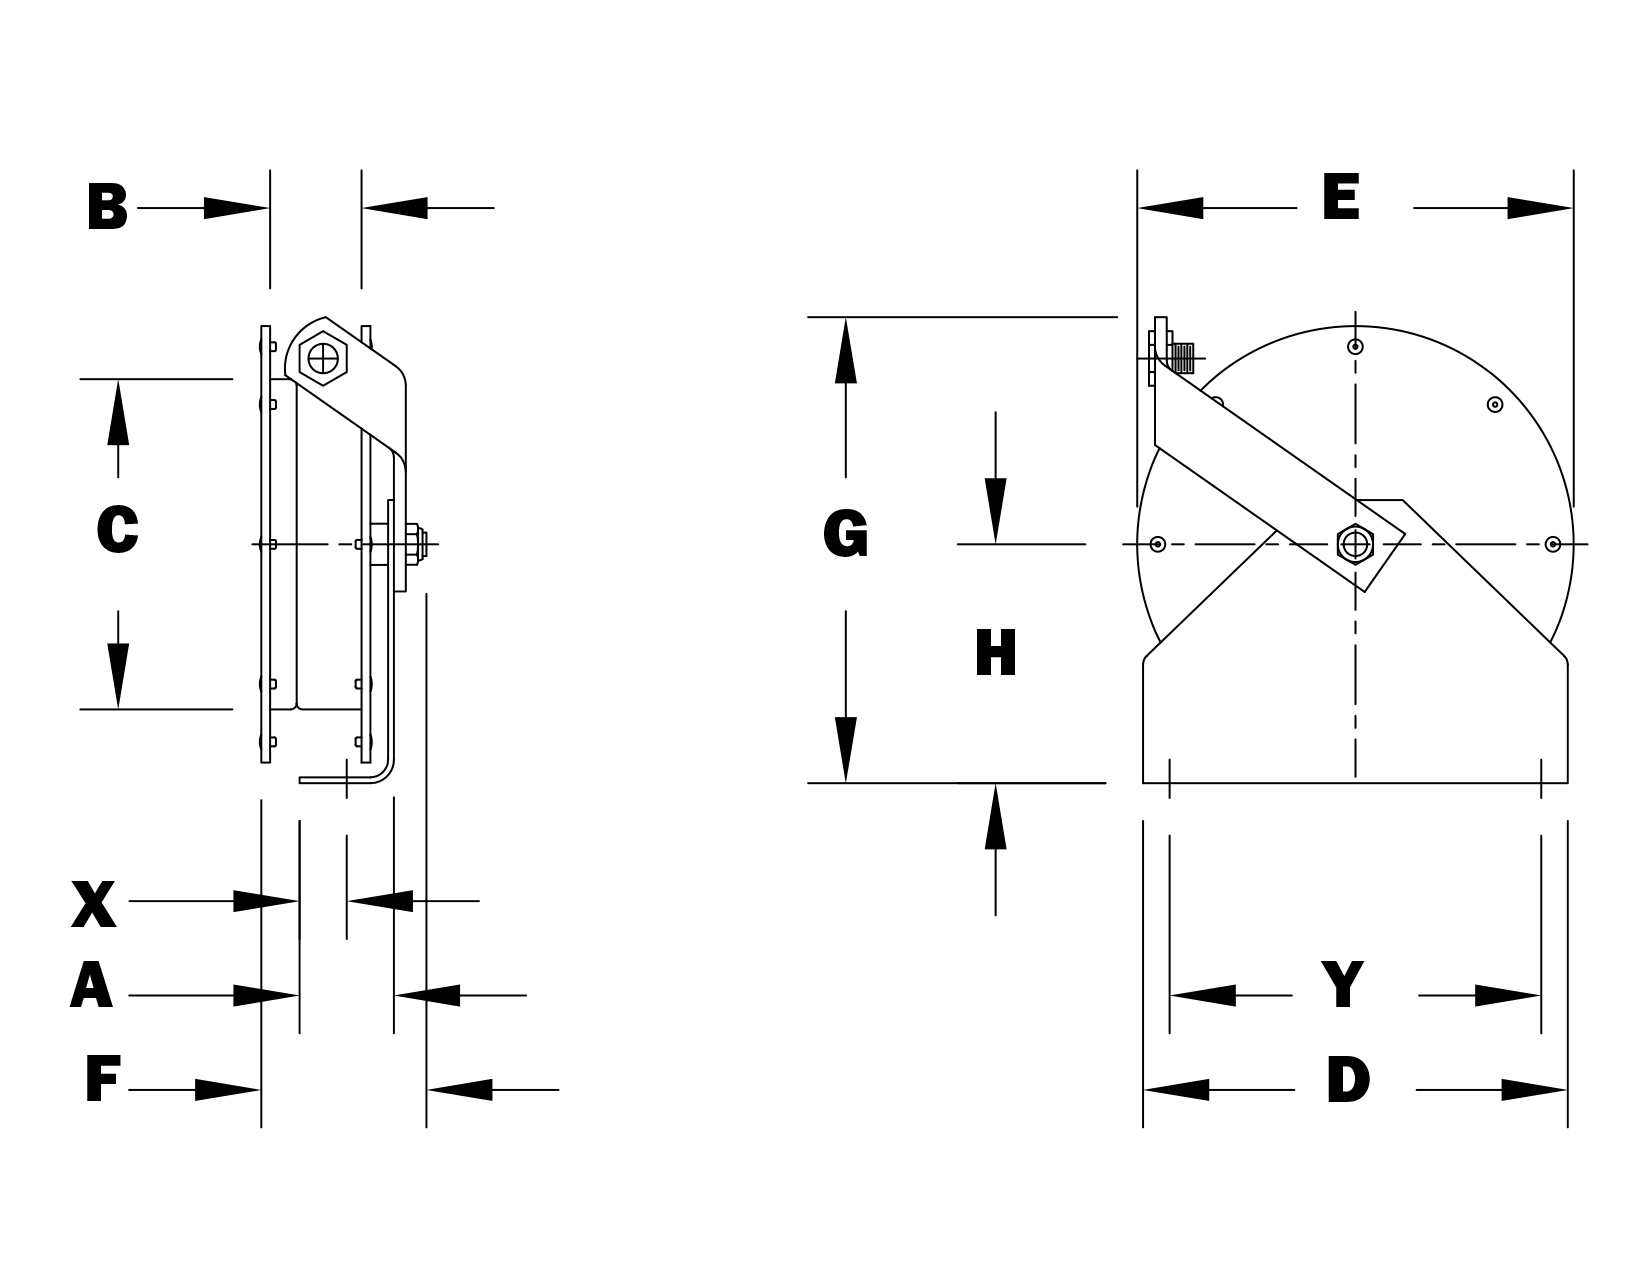 GR Schematic_1493315329 gr series hannay reels official site hannay reel wiring diagram at panicattacktreatment.co